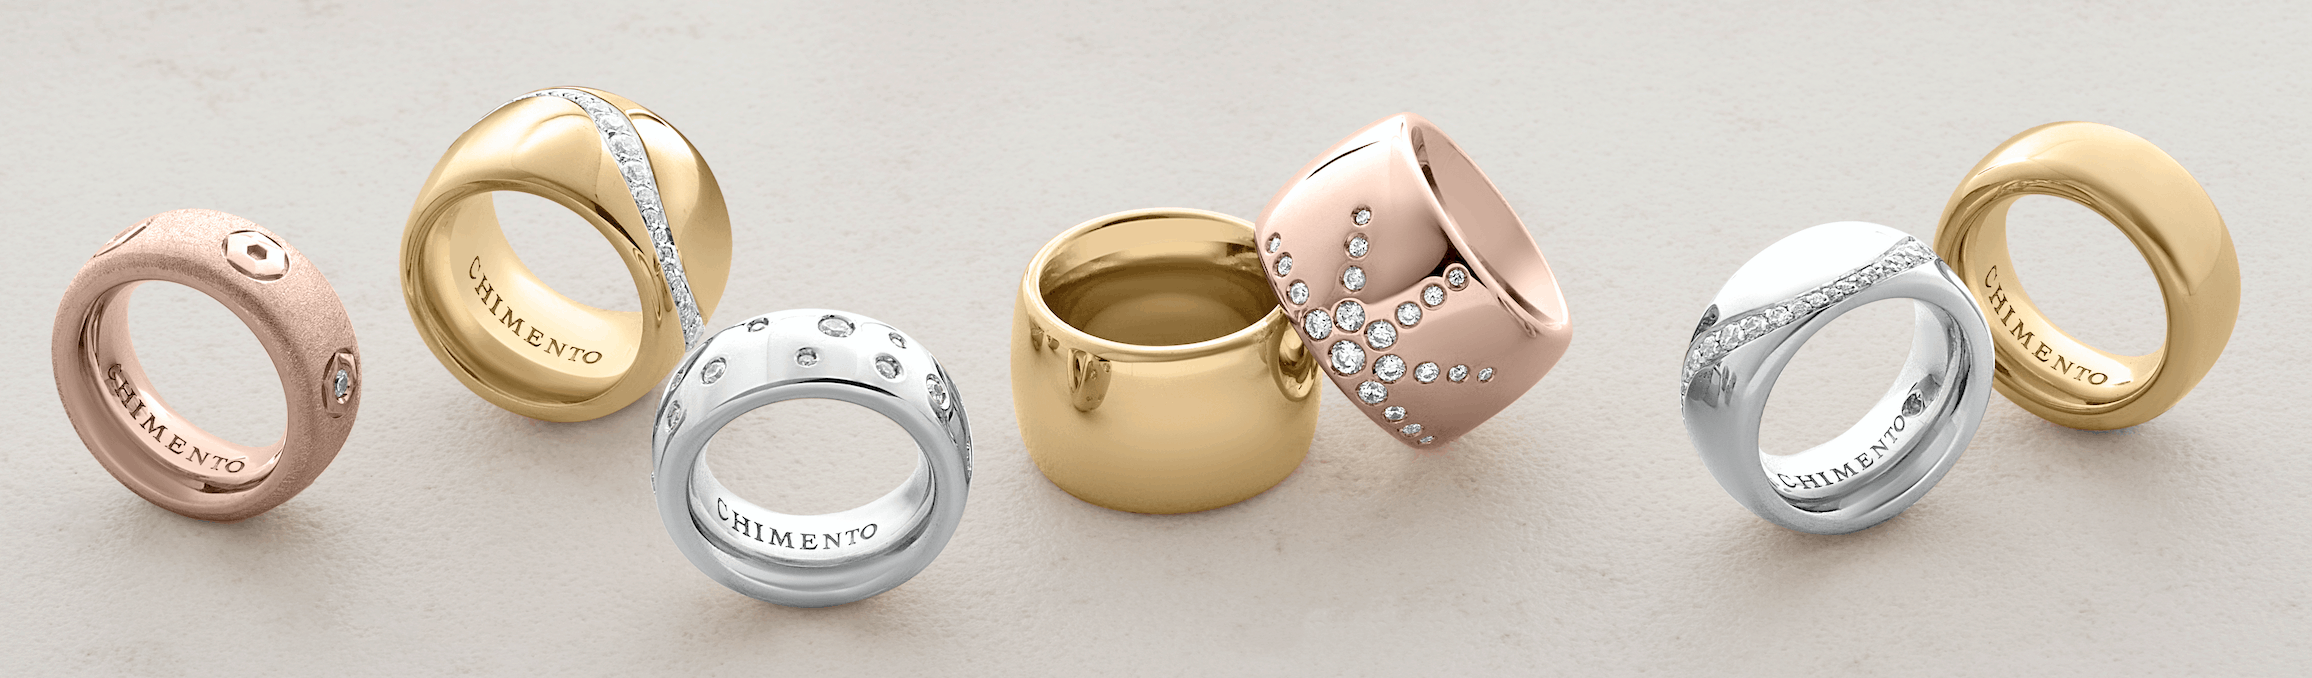 FOREVER UNICO COLLECTION by CHIMENTO launches with a Patented Size-Fit Mechanism